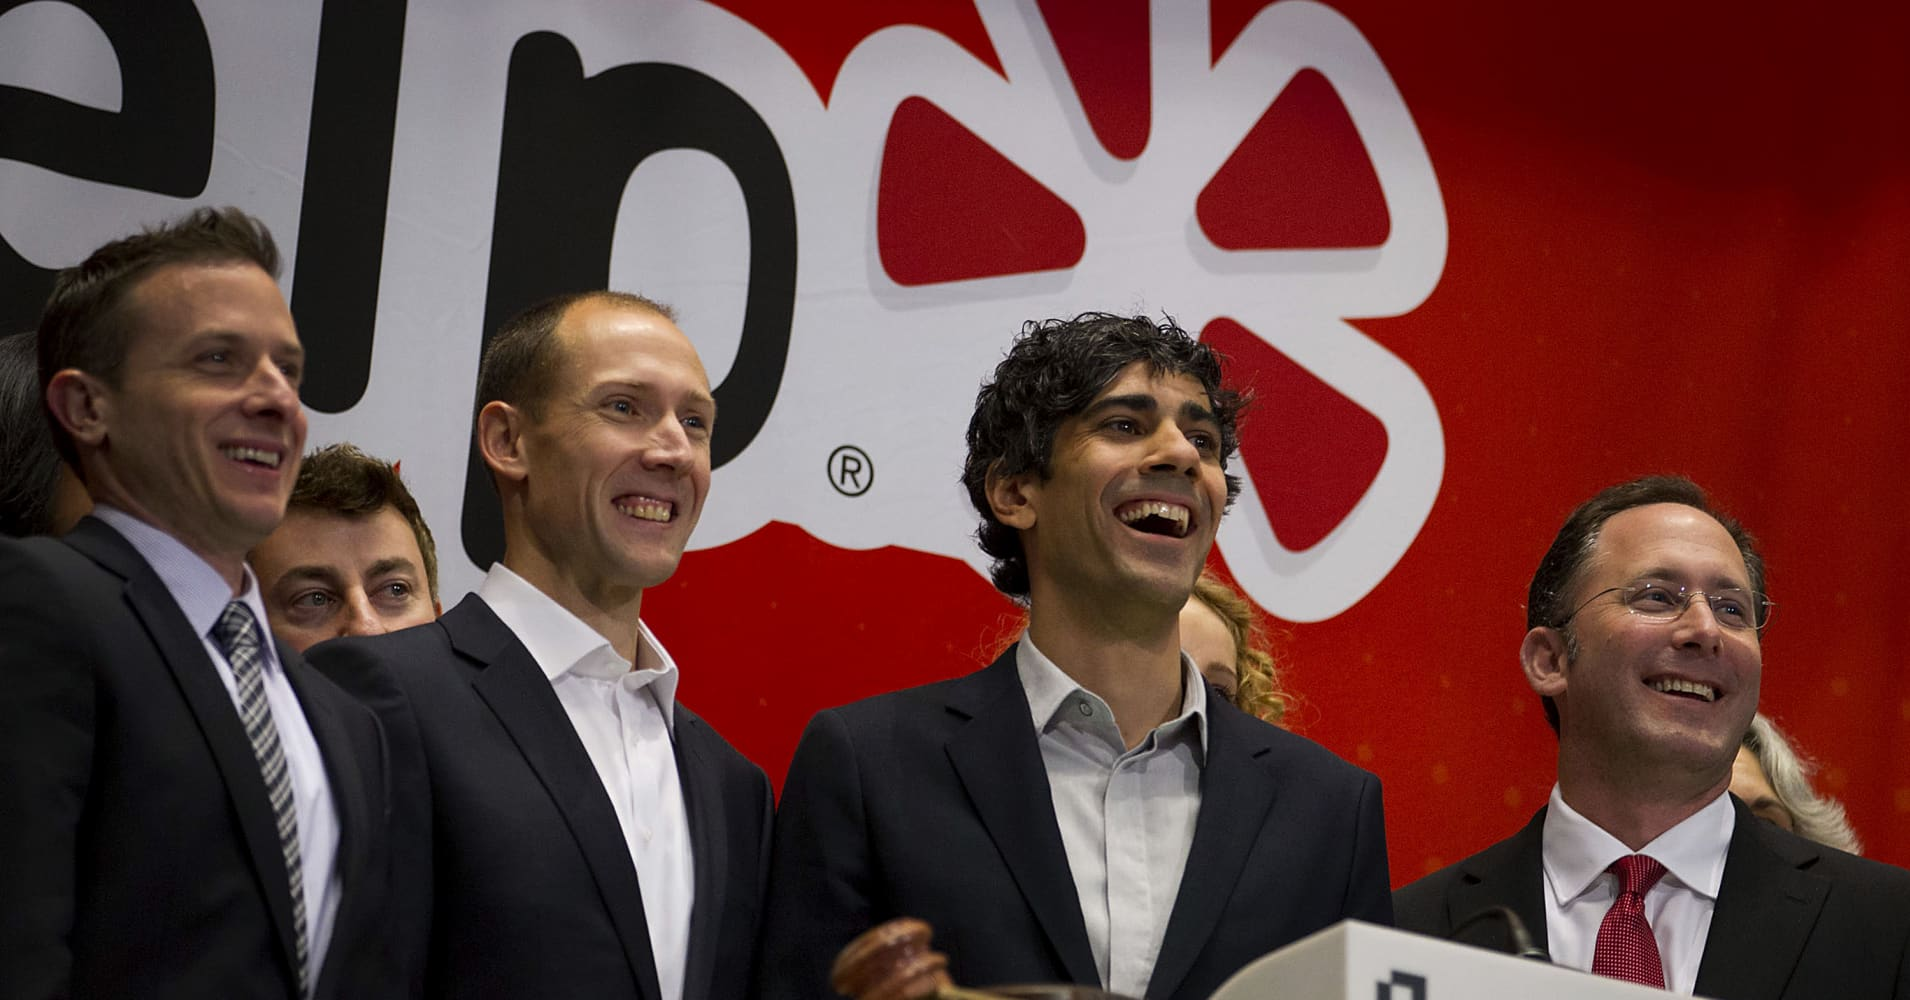 Yelp Tanks More than 25% After Announcing Third Quarter Earnings